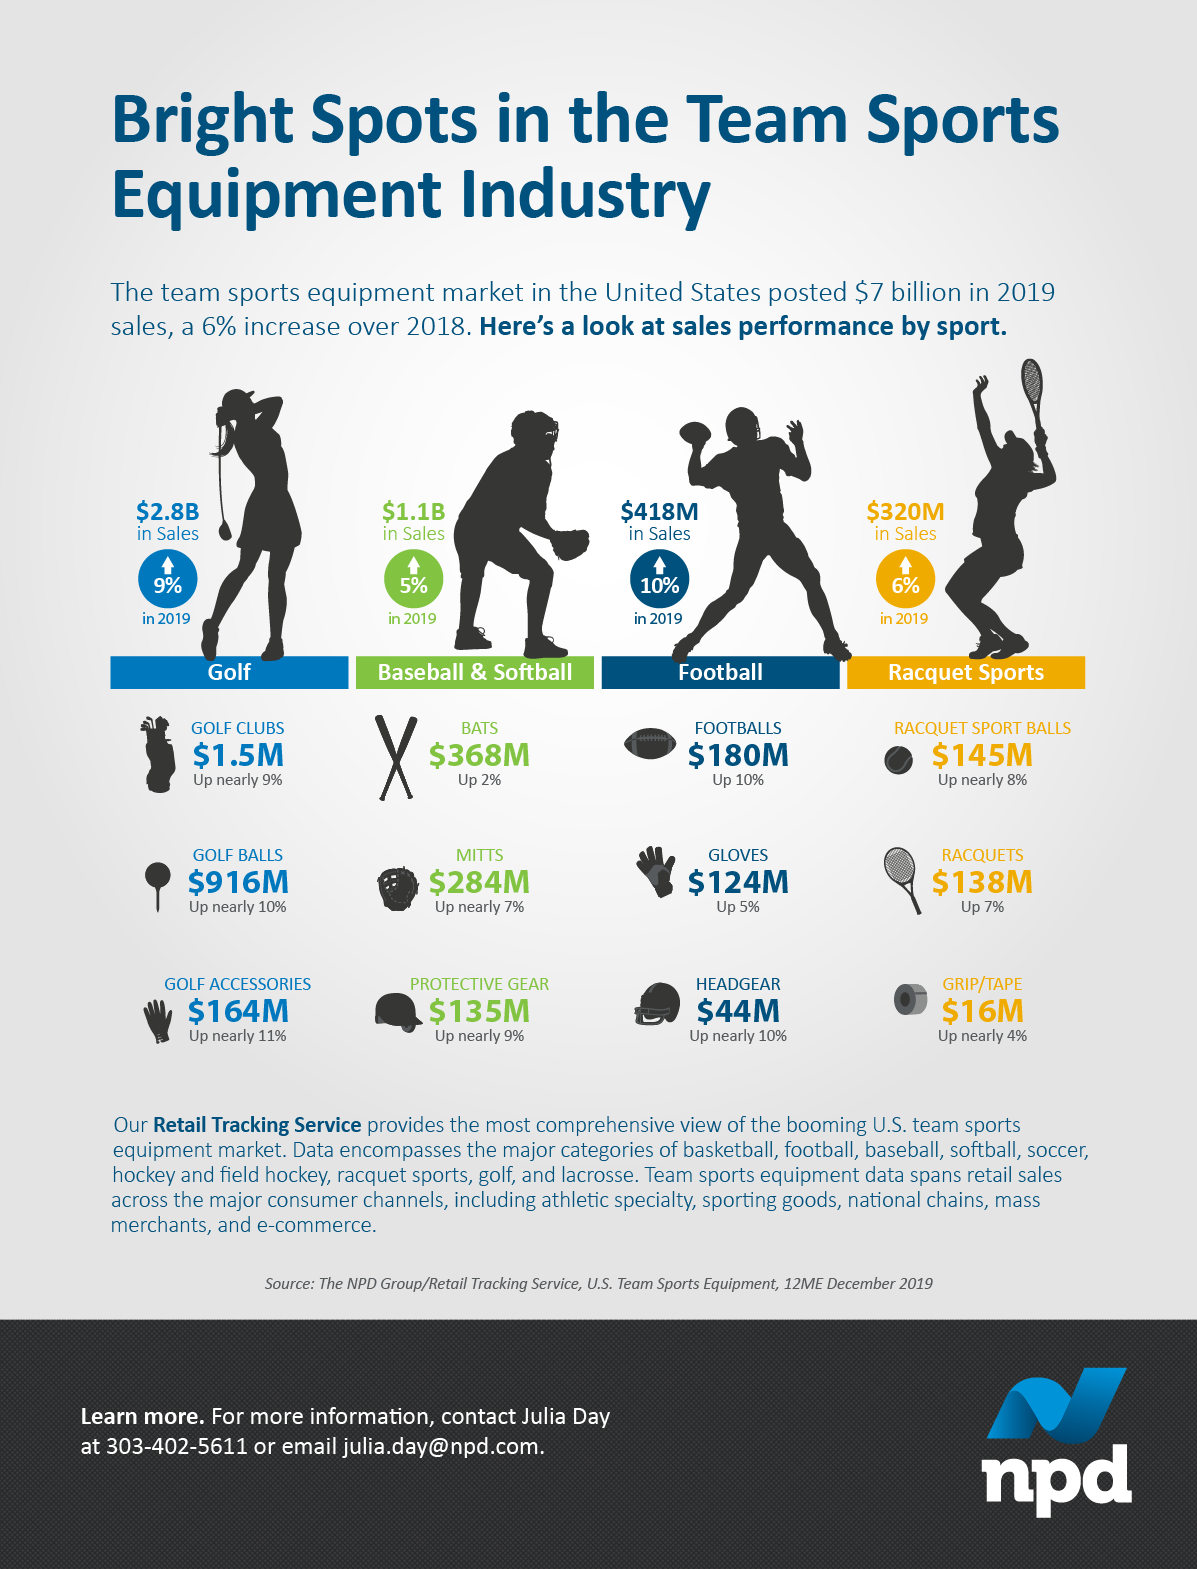 The team sports equipment market in the United States posted $7 billion in 2019 sales, a 6% increase over 2018.